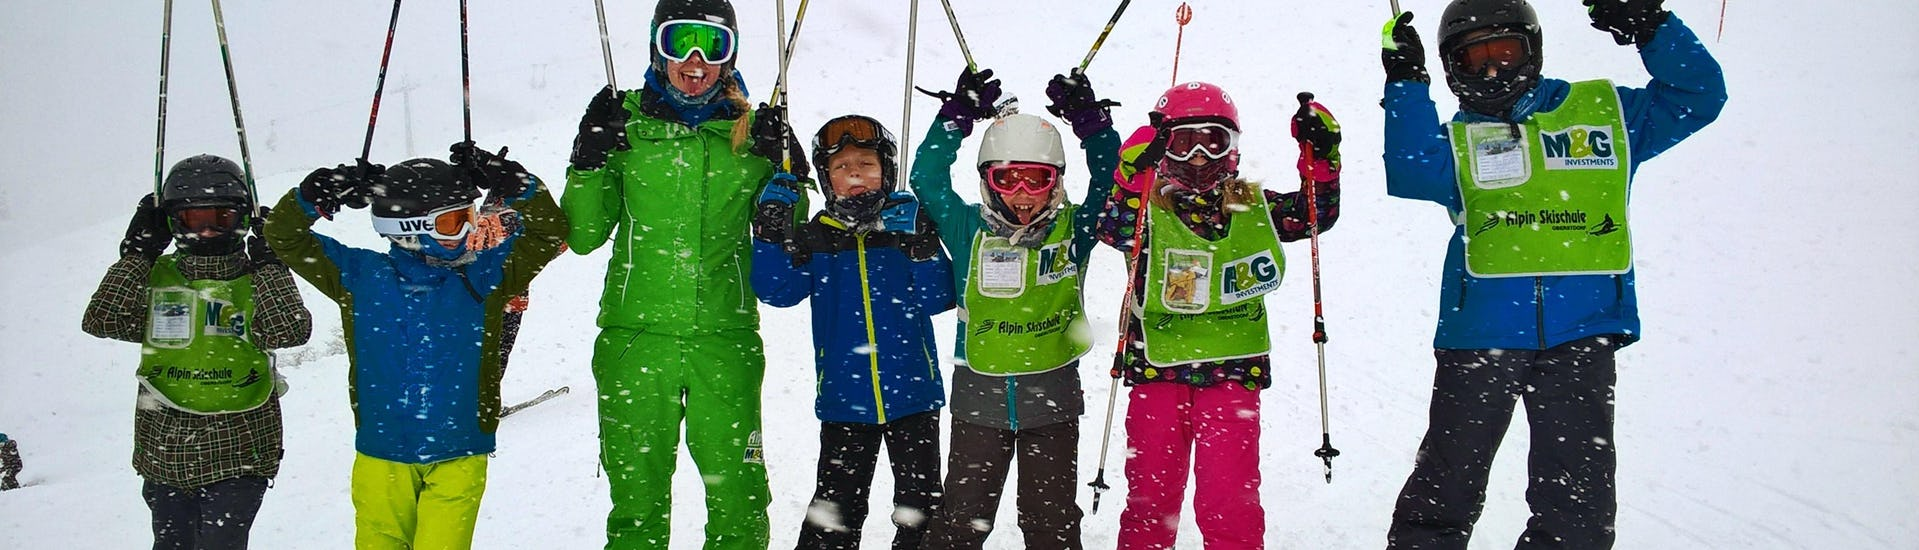 Little ski enthusiasts are having great time while learning how to ski in the ski school Alpin Skischule Oberstdorf located in the ski resort Oberstdorf.